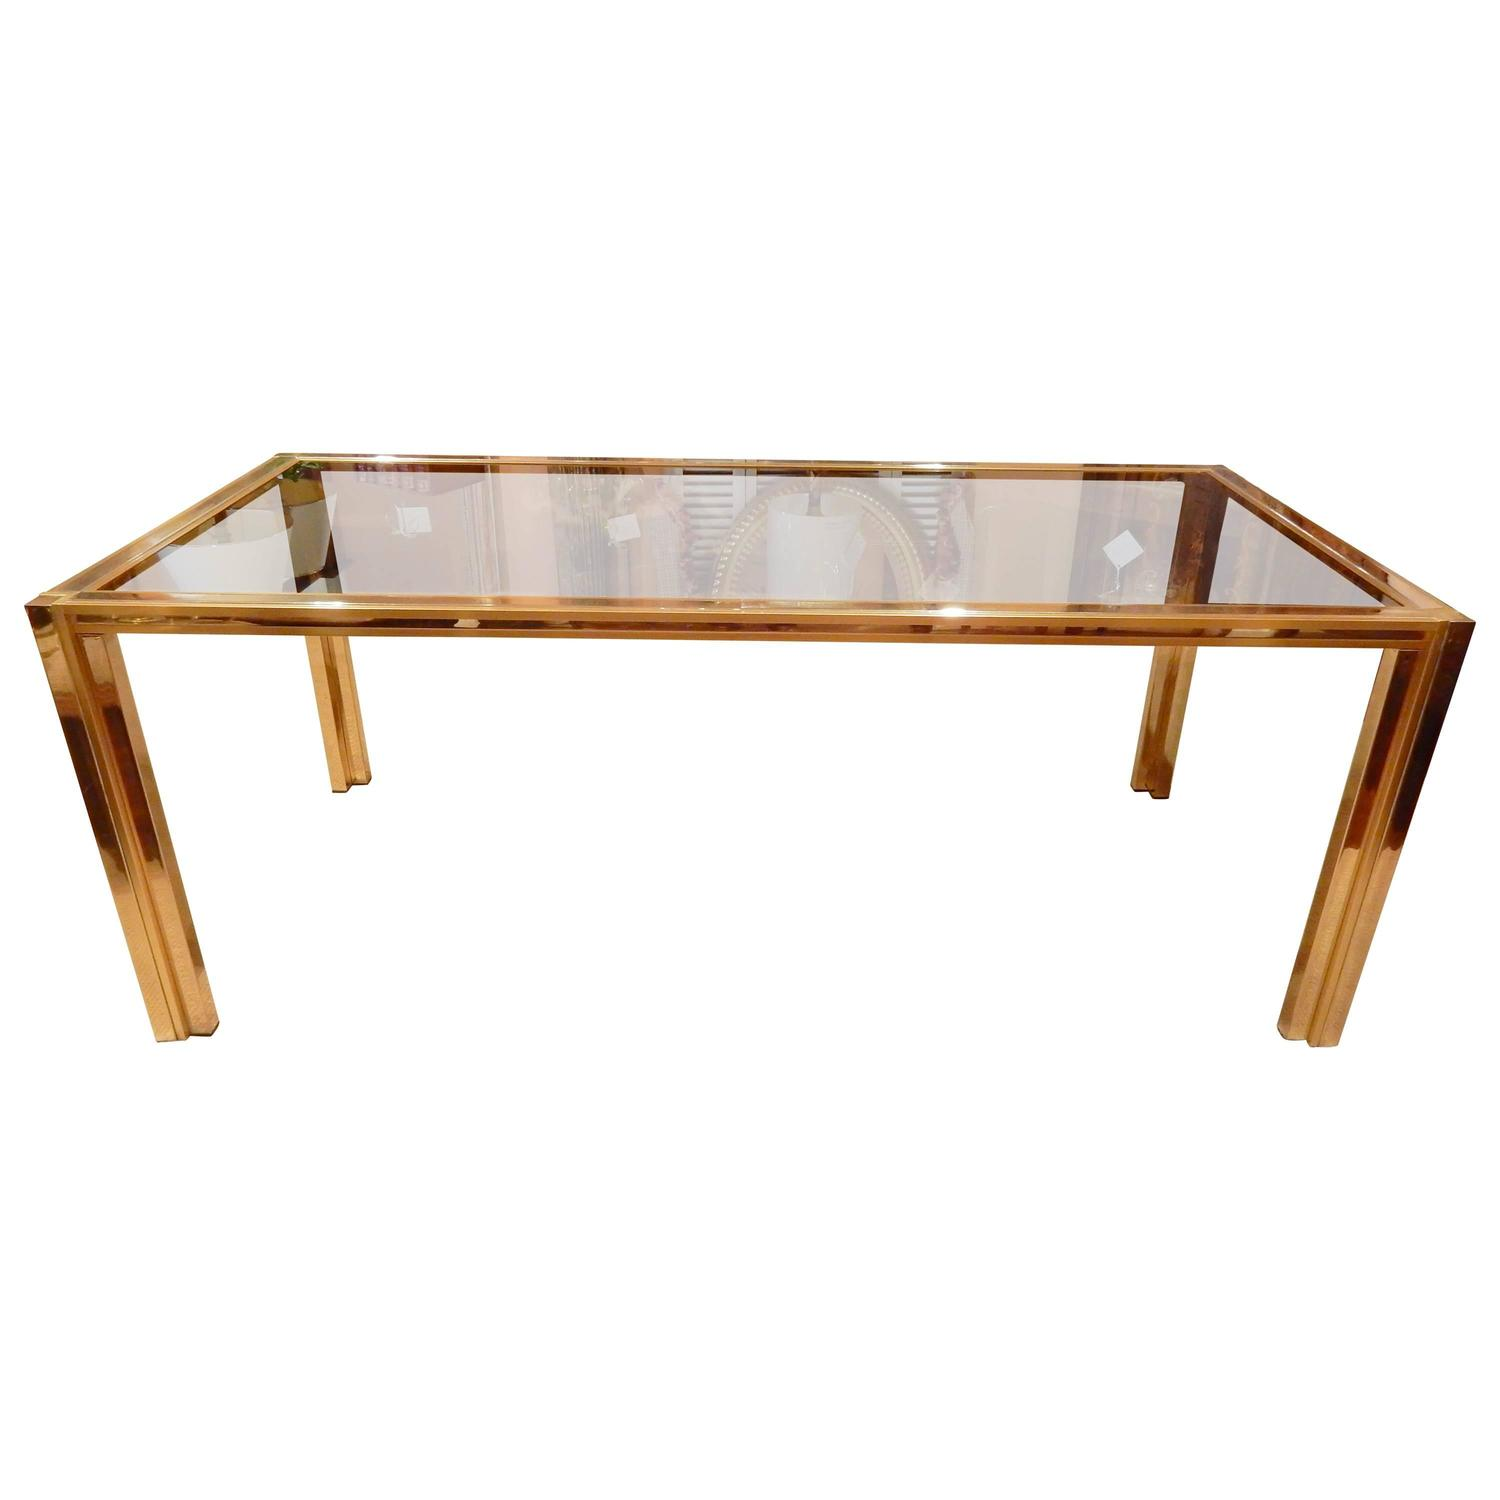 italian mid century modern dining table at 1stdibs